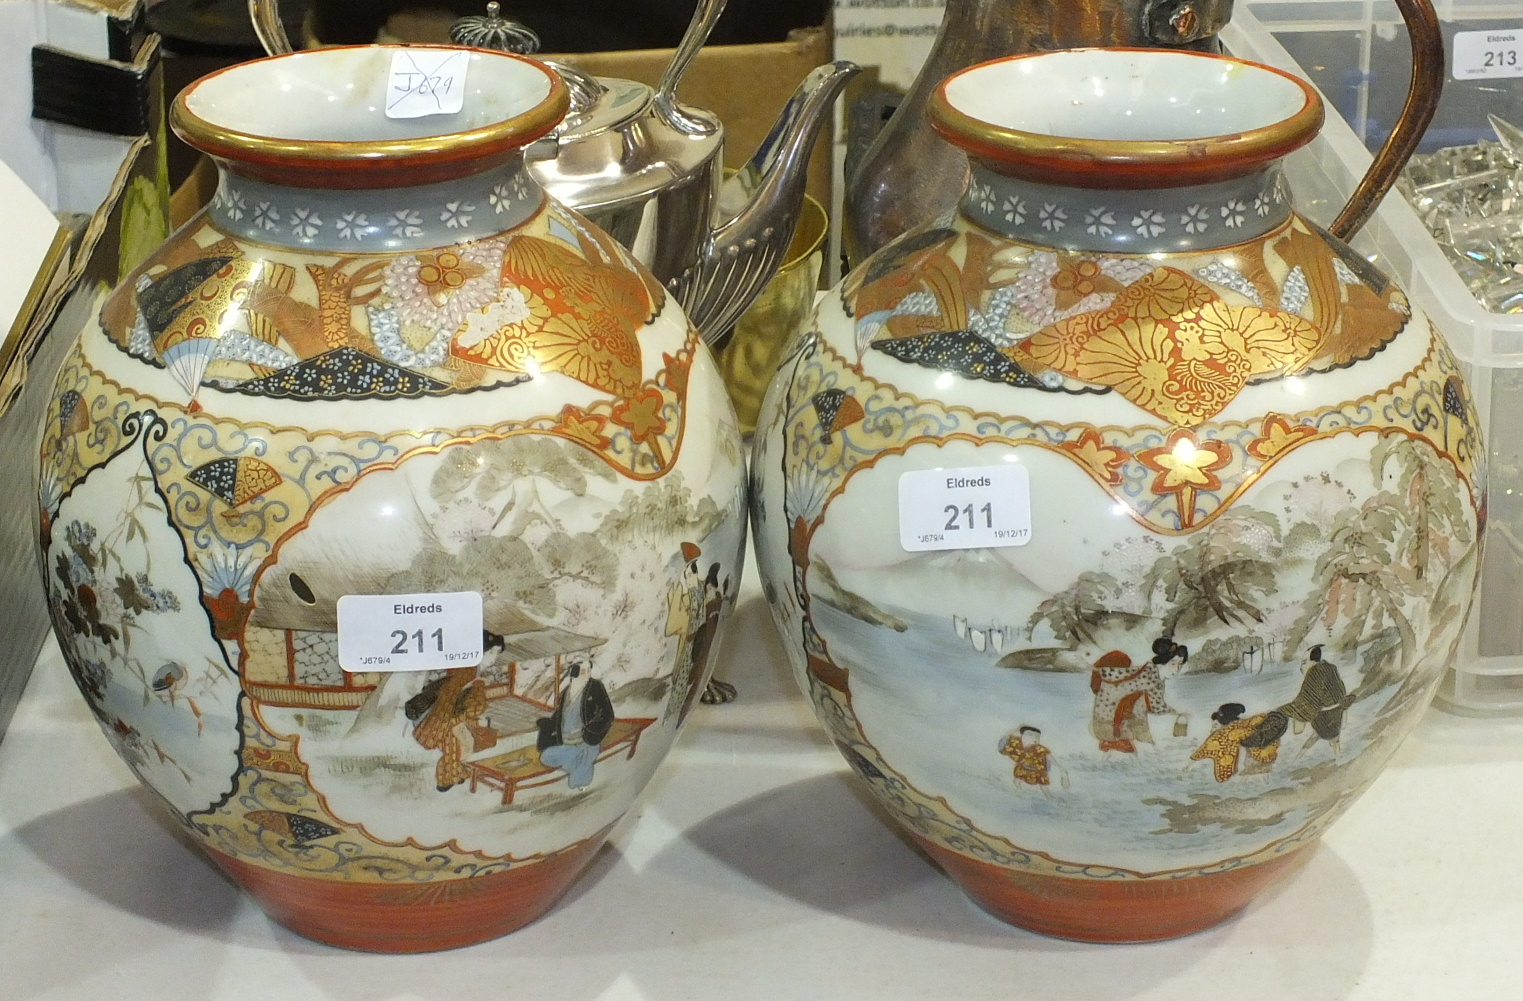 Lot 211 - A pair of large 19th century Japanese Kutani vases decorated with figures in a lakeland setting,